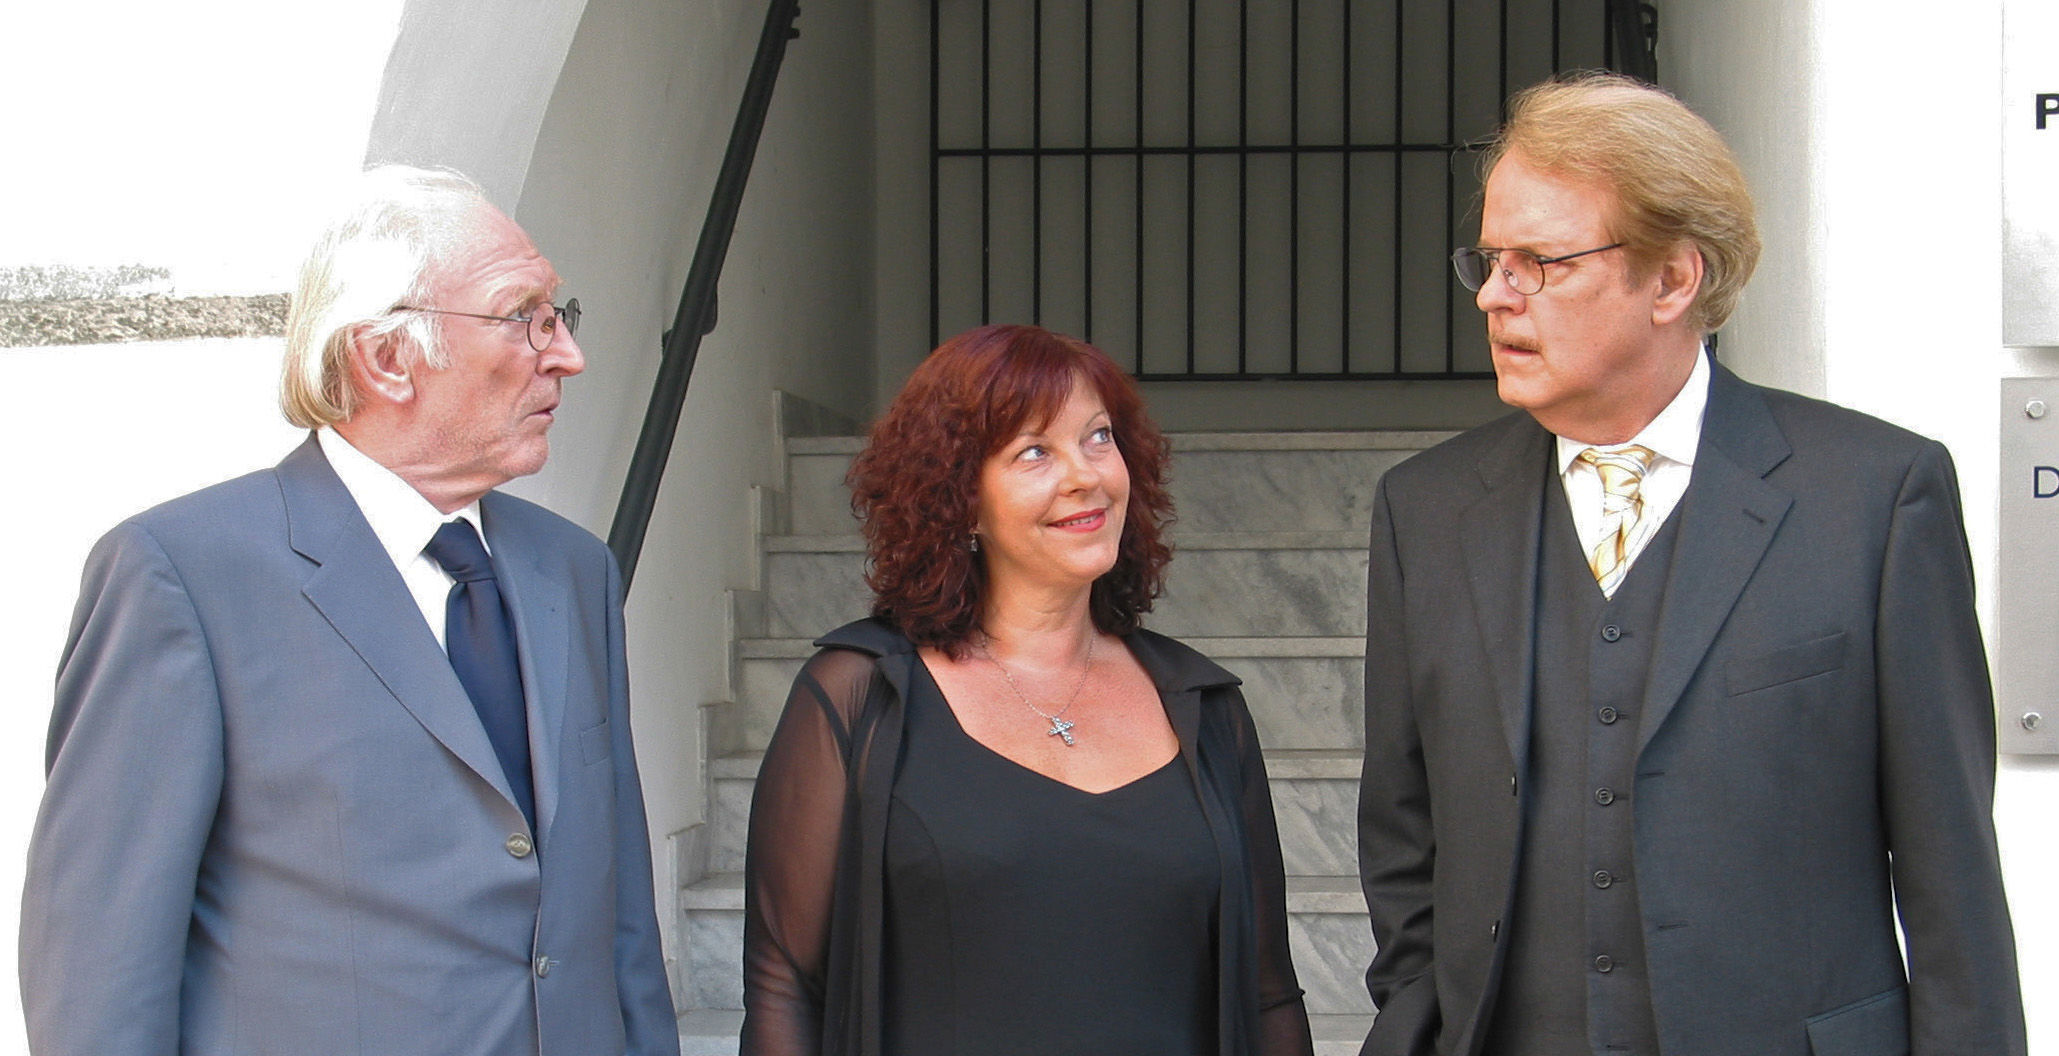 Paul (Karl Merkatz), Conny (Elfi Eschke), Albert (Peter Fricke)